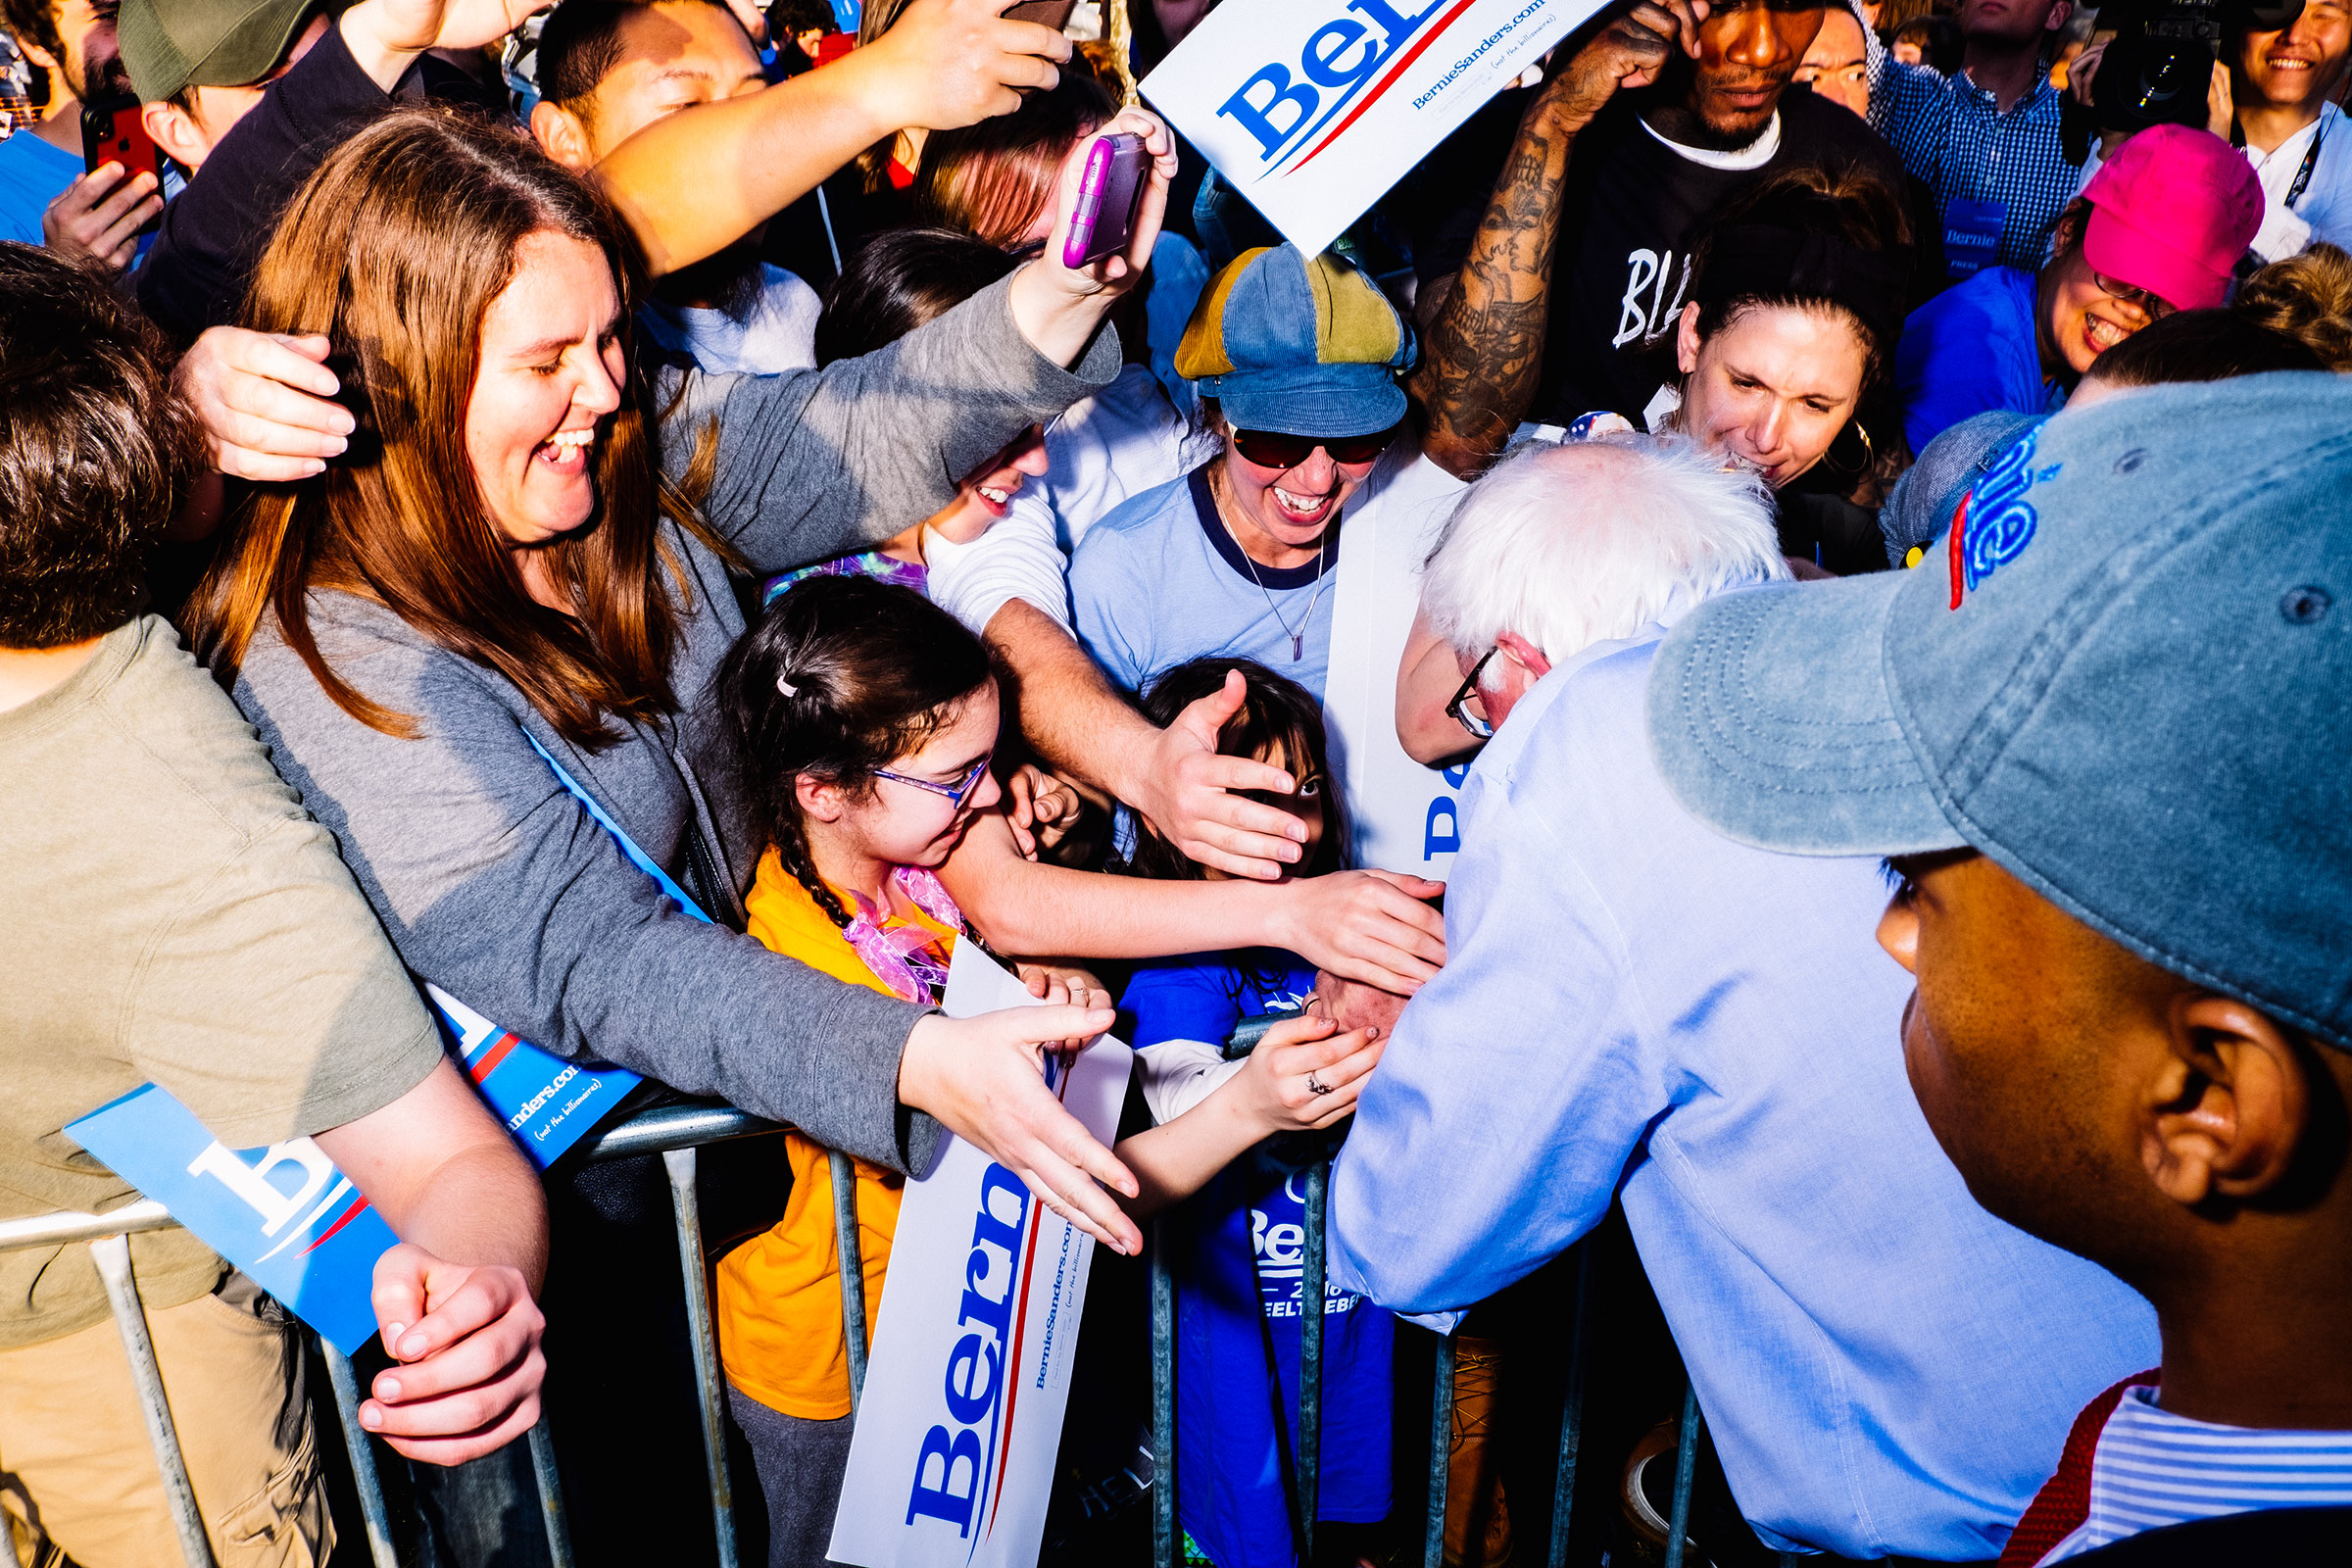 Sanders greets supporters at a rally in Pittsburgh